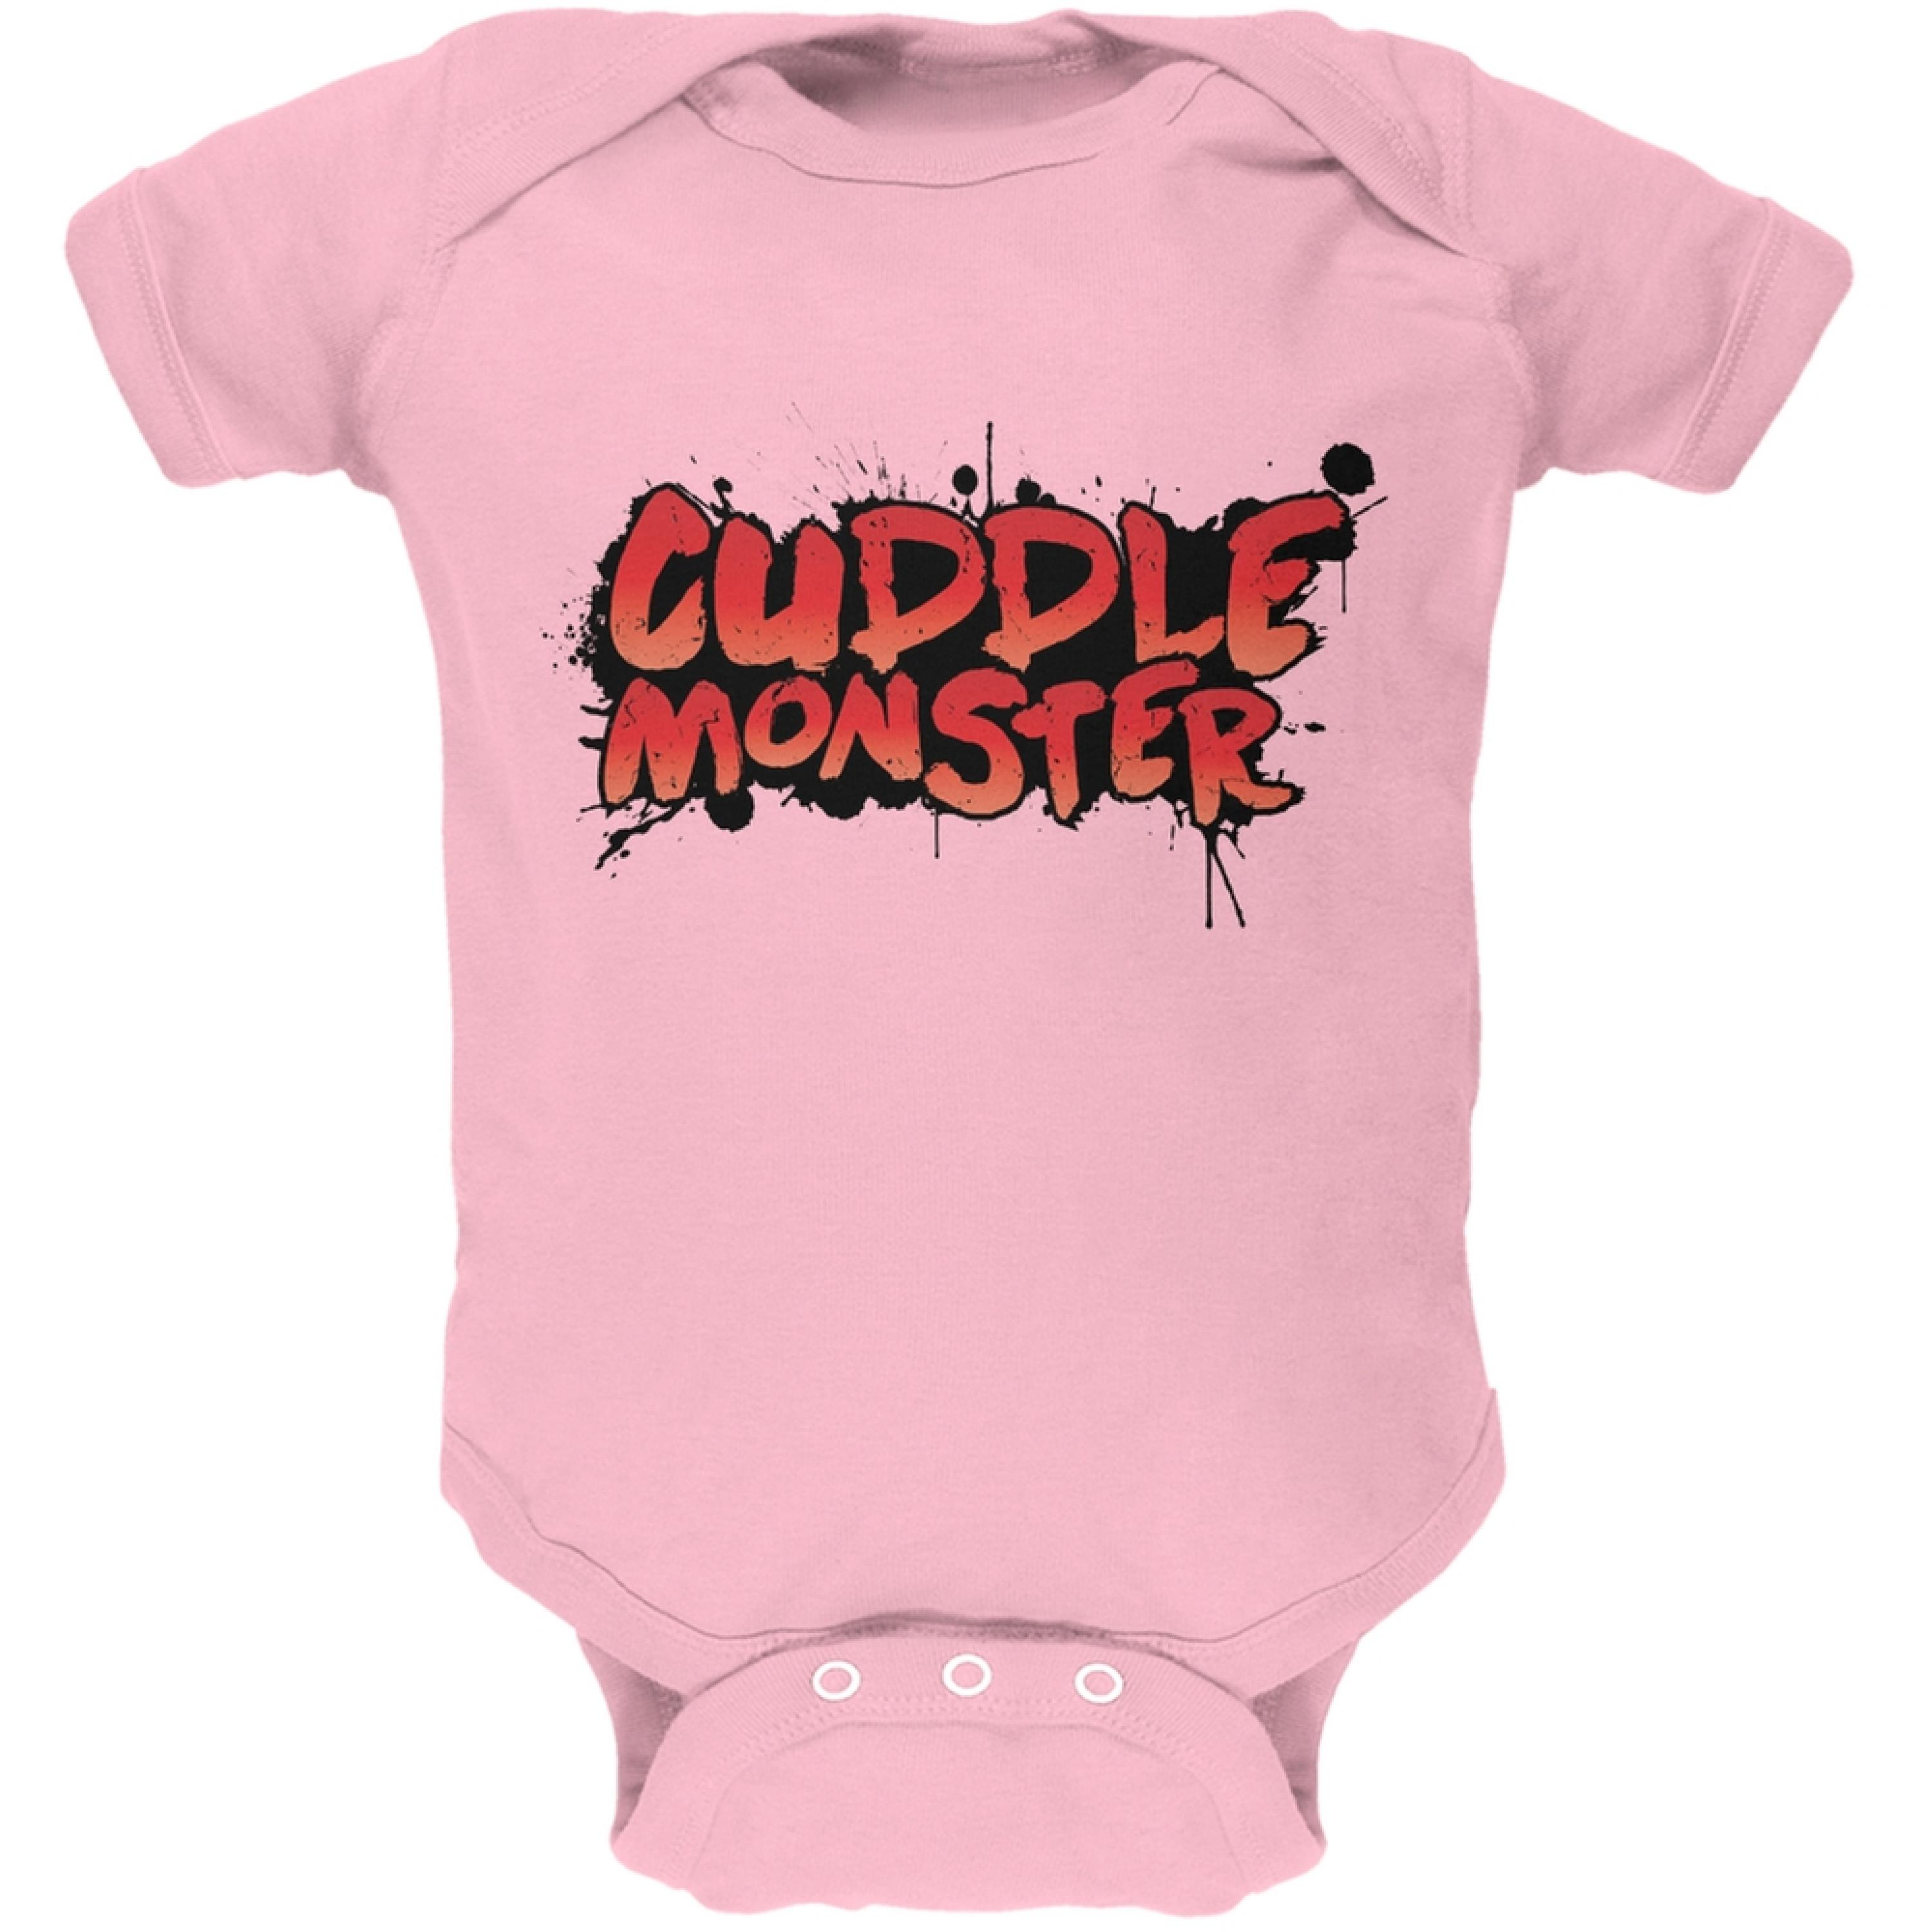 Cuddle Monster Light Pink Soft Baby One Piece